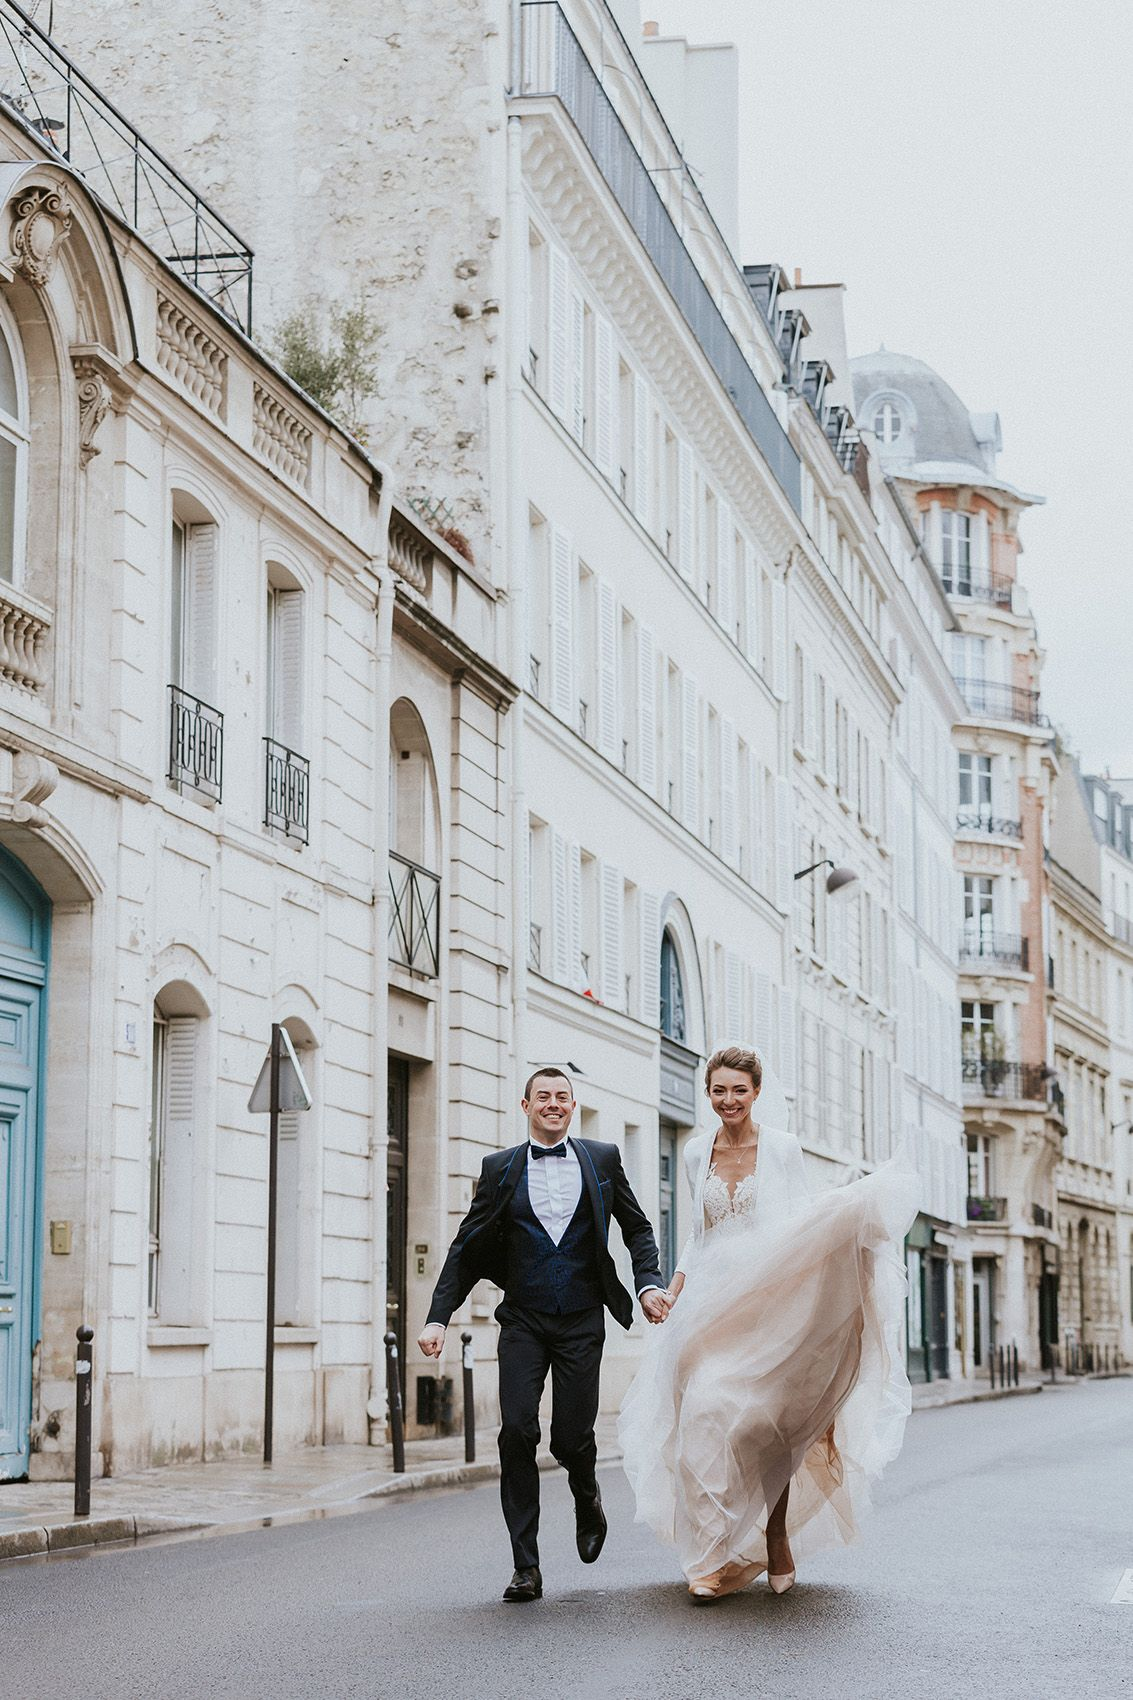 20 Best Paris Wedding Photos - Wedding Photography